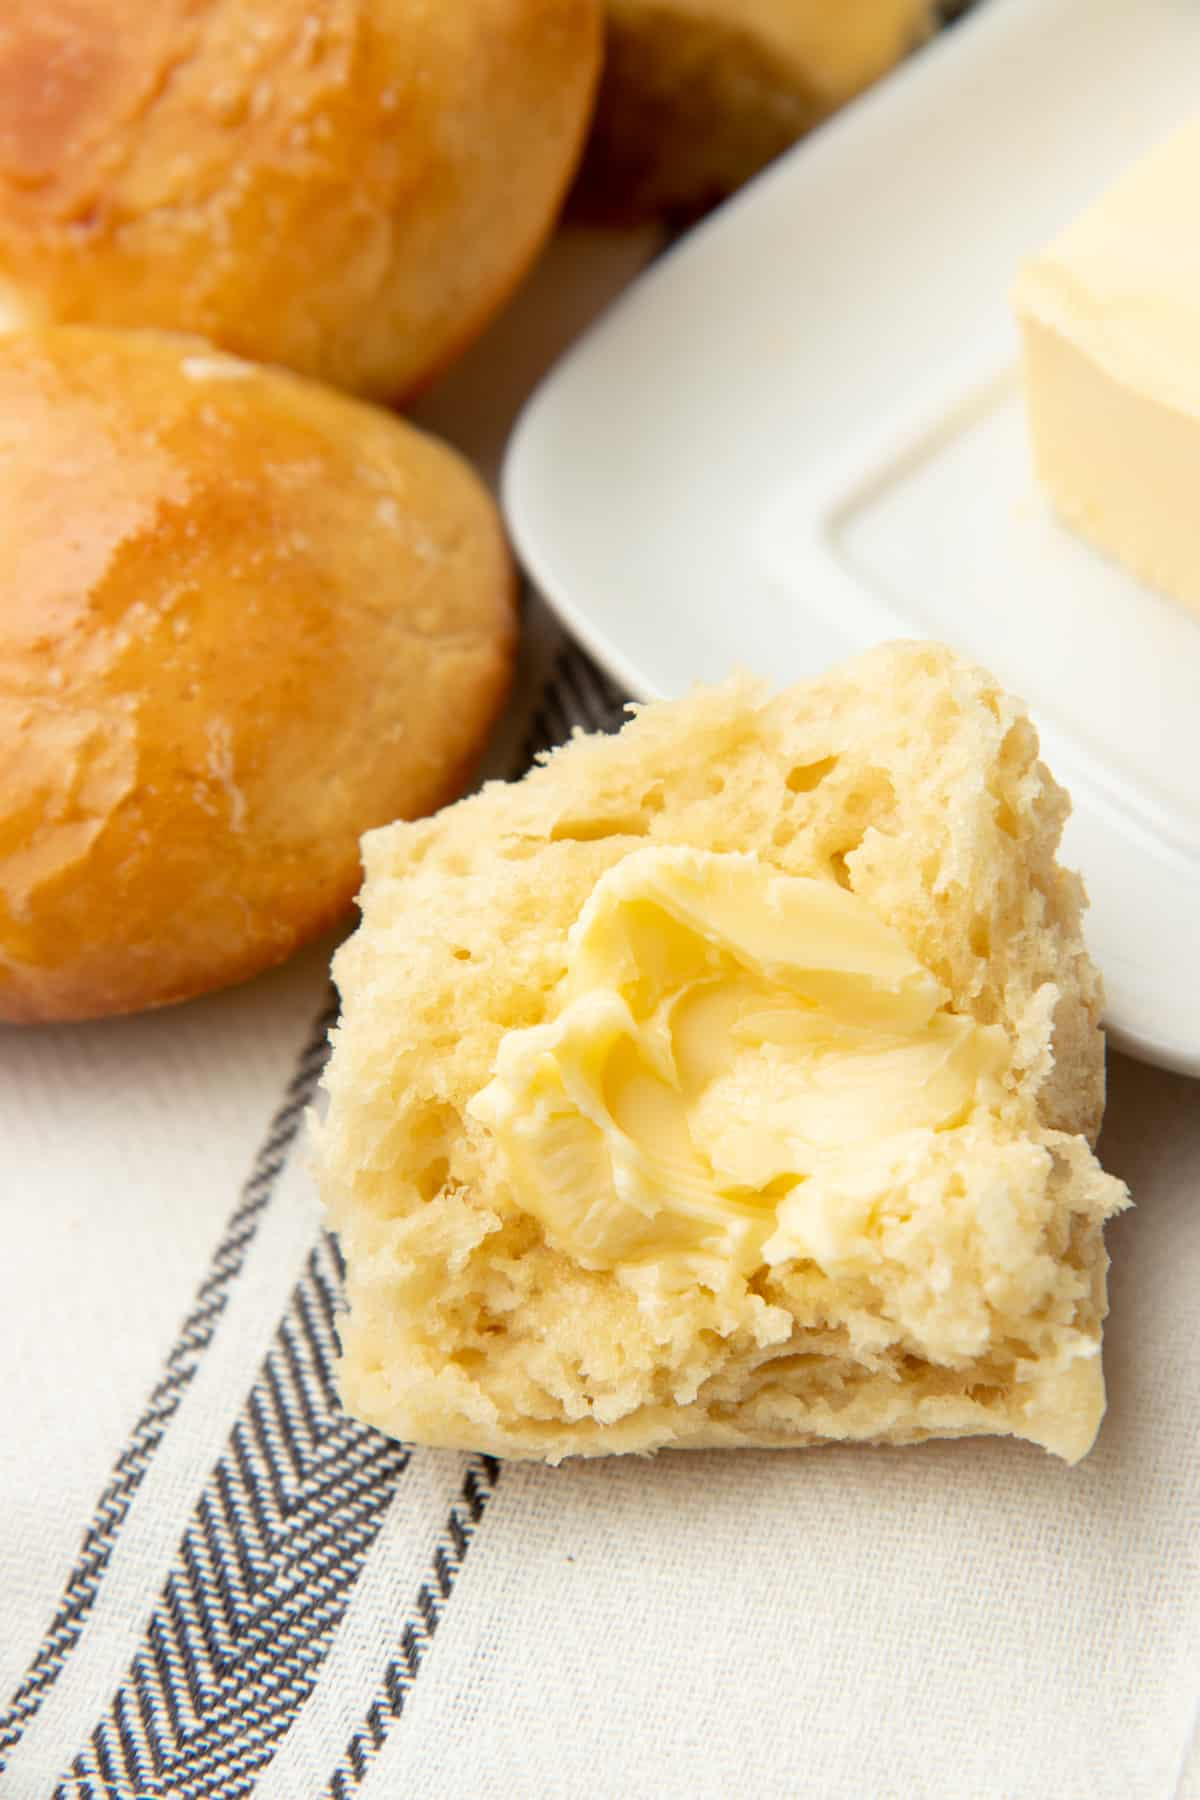 A bread roll cut in half is spread with butter and sits on a towel.